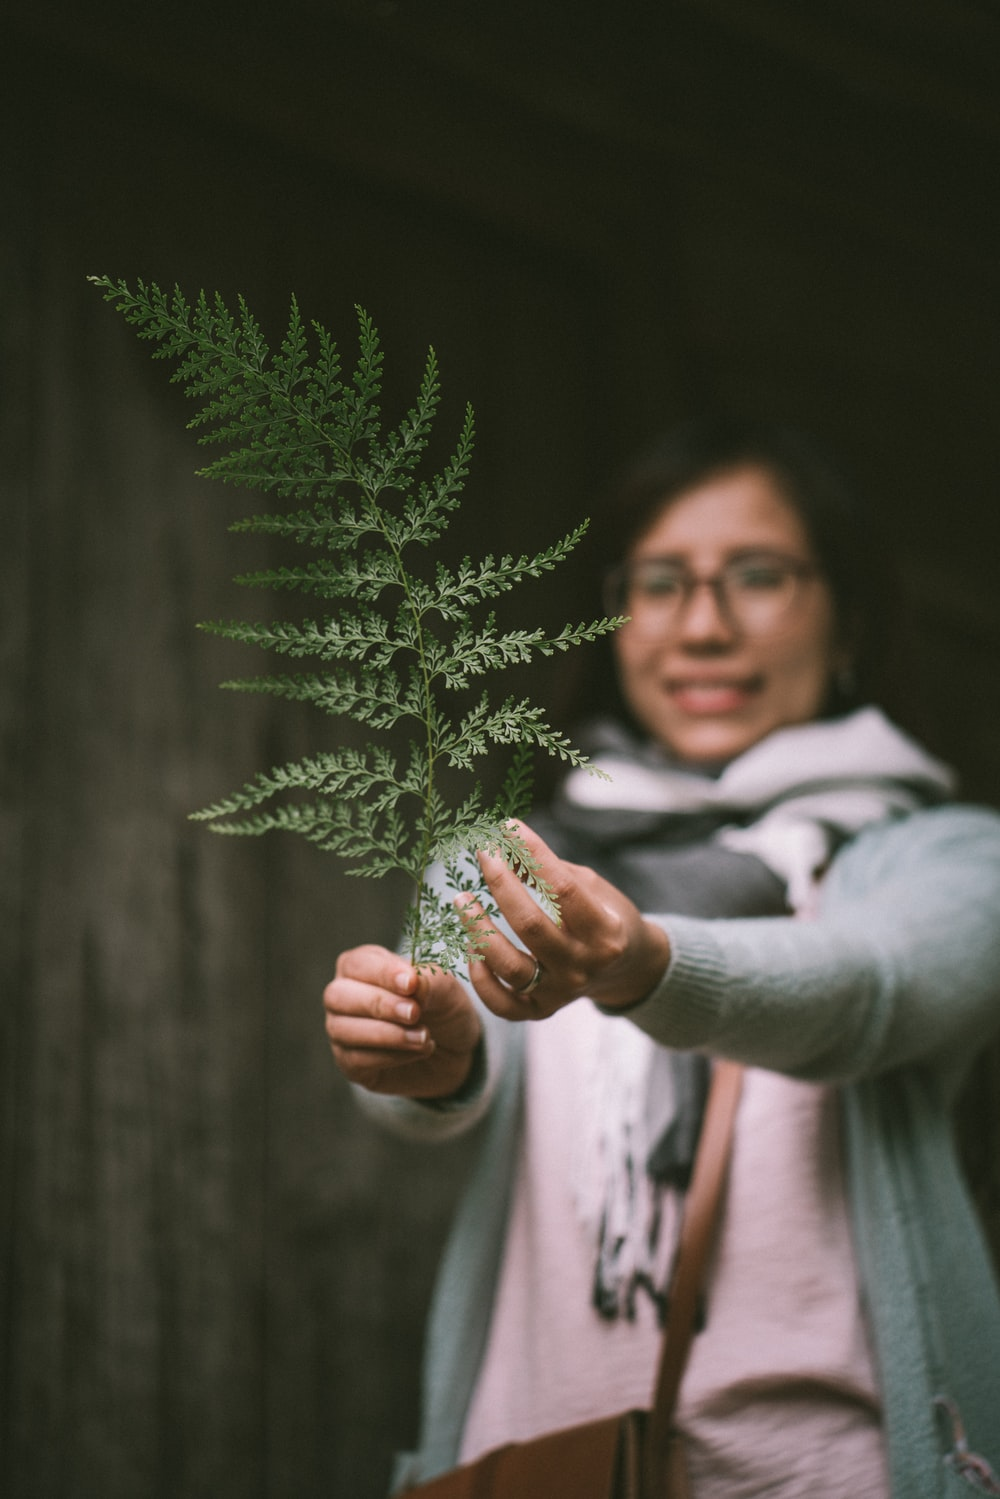 woman holding green leaf while smiling